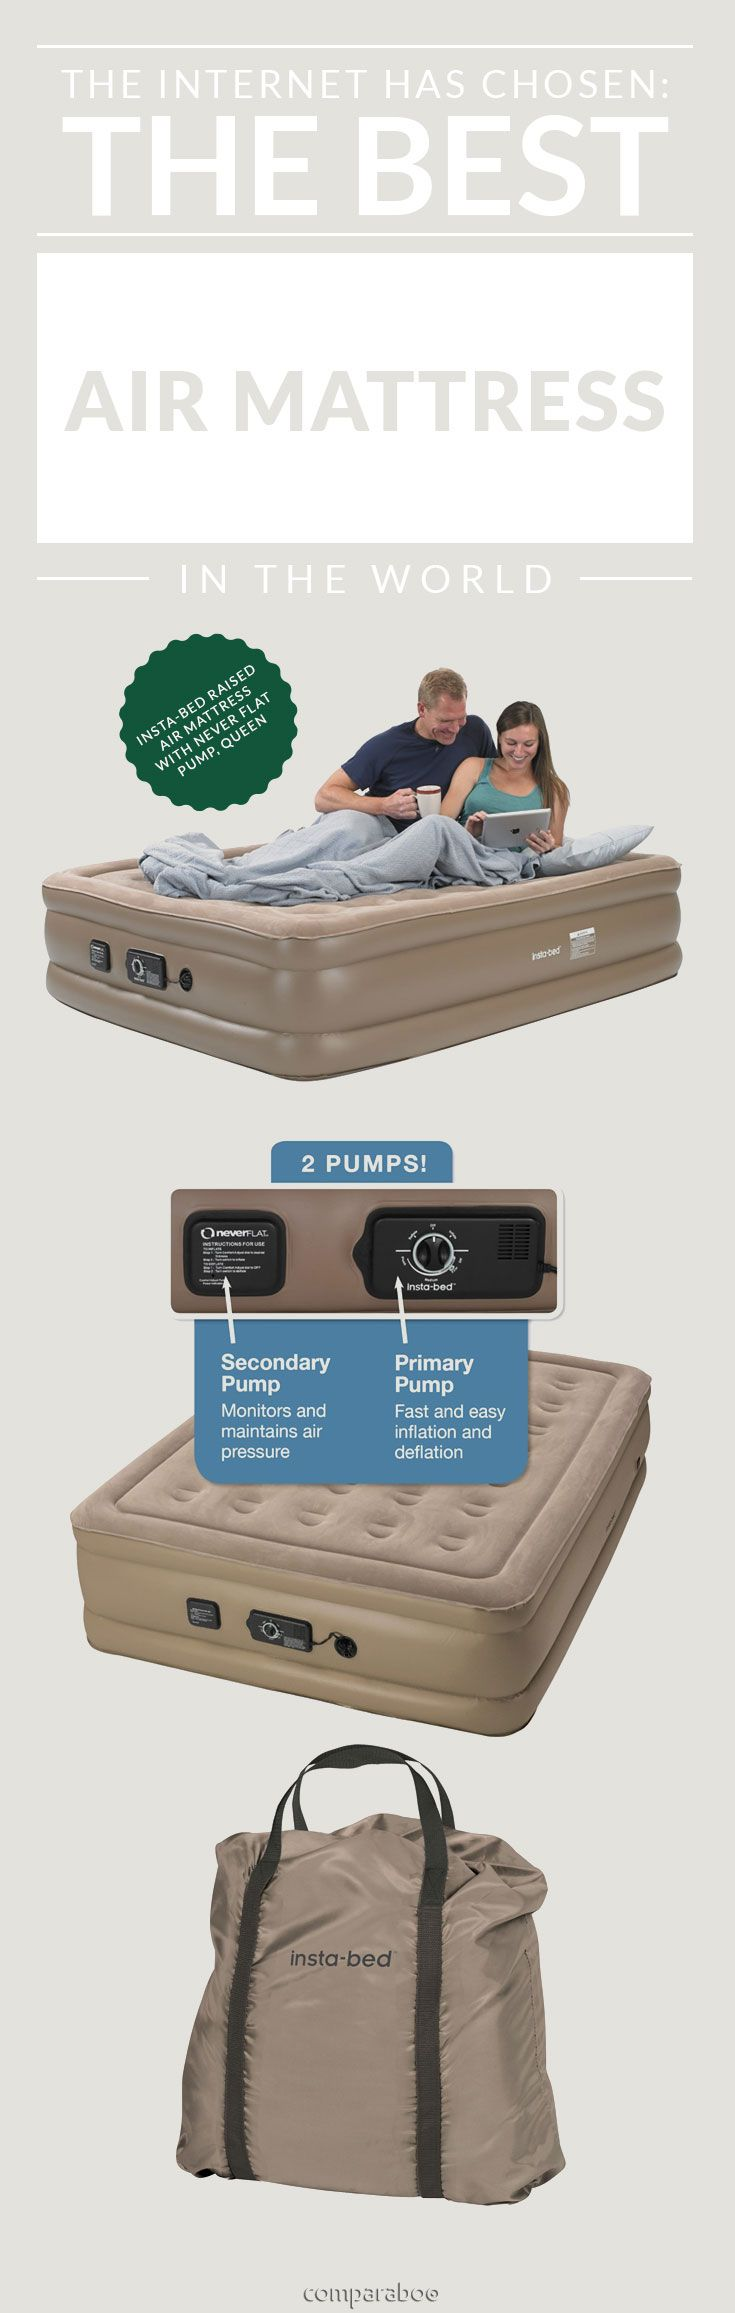 The Highest Rated Air Mattress That Stays Inflated All Night Goes